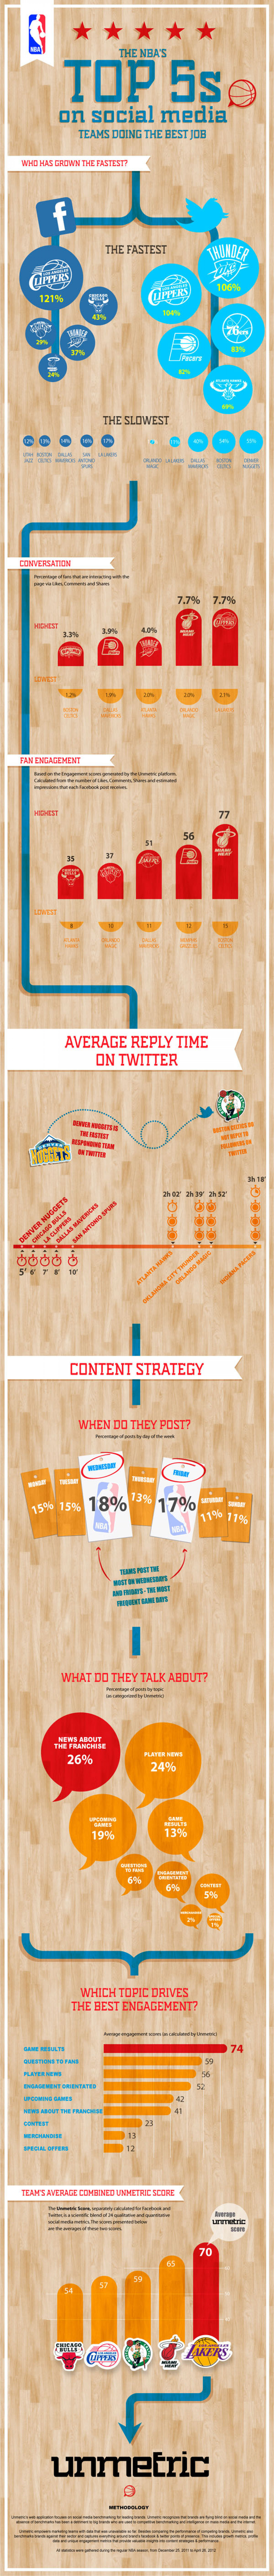 The NBA's Top 5s on Social Media Infographic